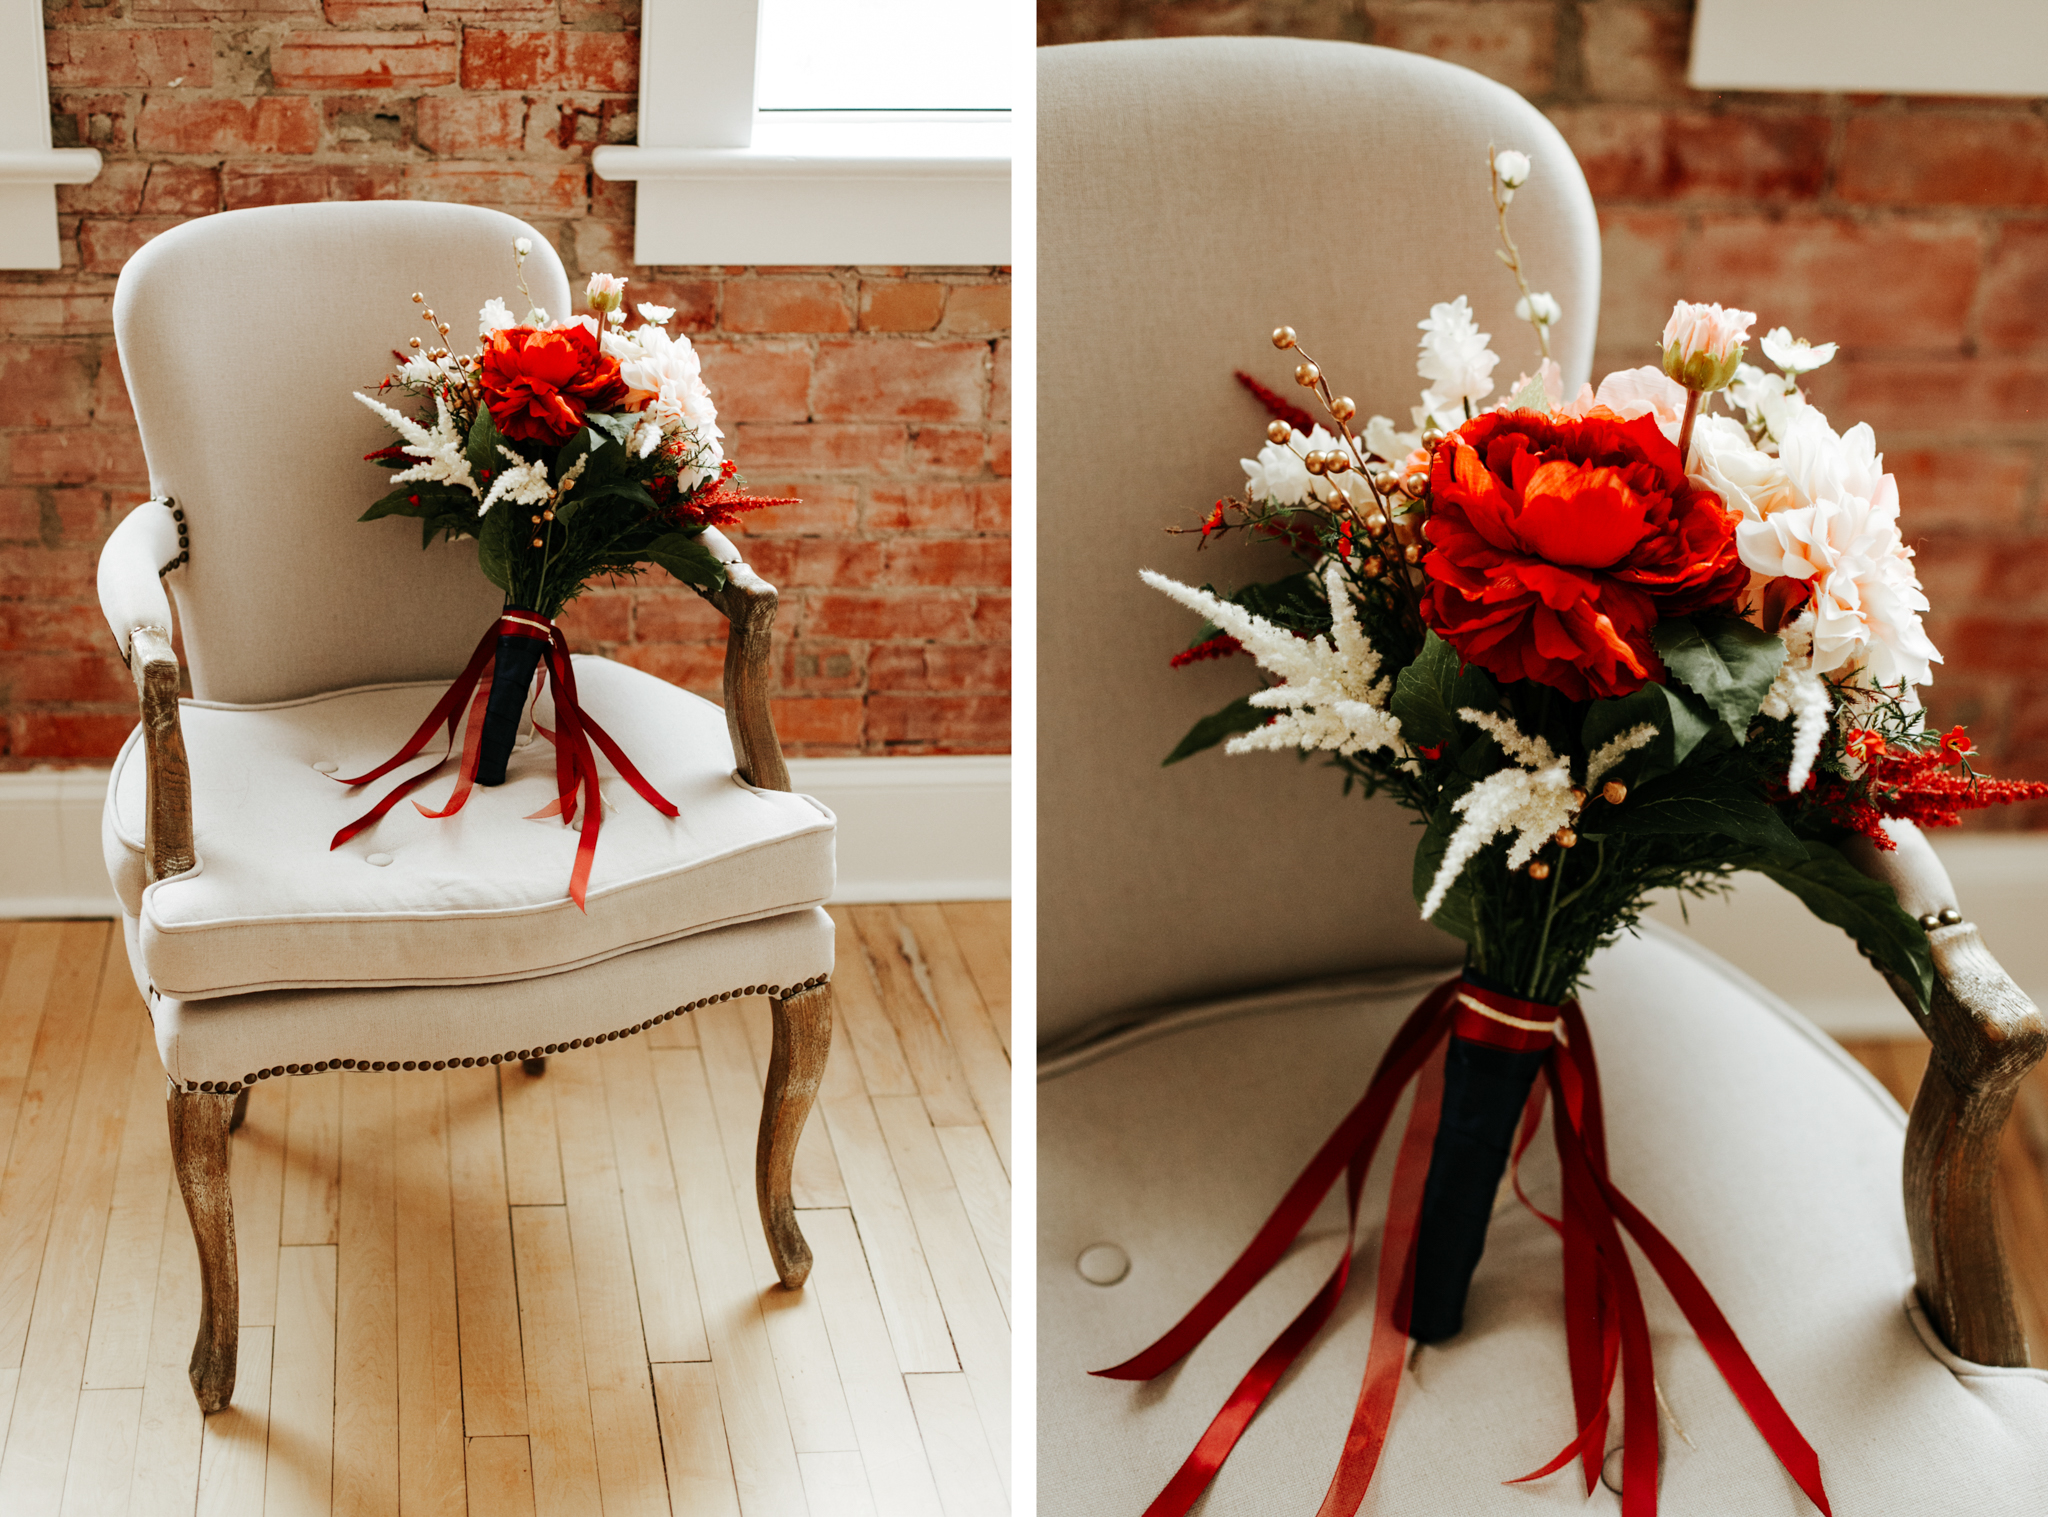 lethbridge-photographer-love-and-be-loved-photography-designed-to-dwell-wedding-katie-kelly-photo-image-picture-207.jpg